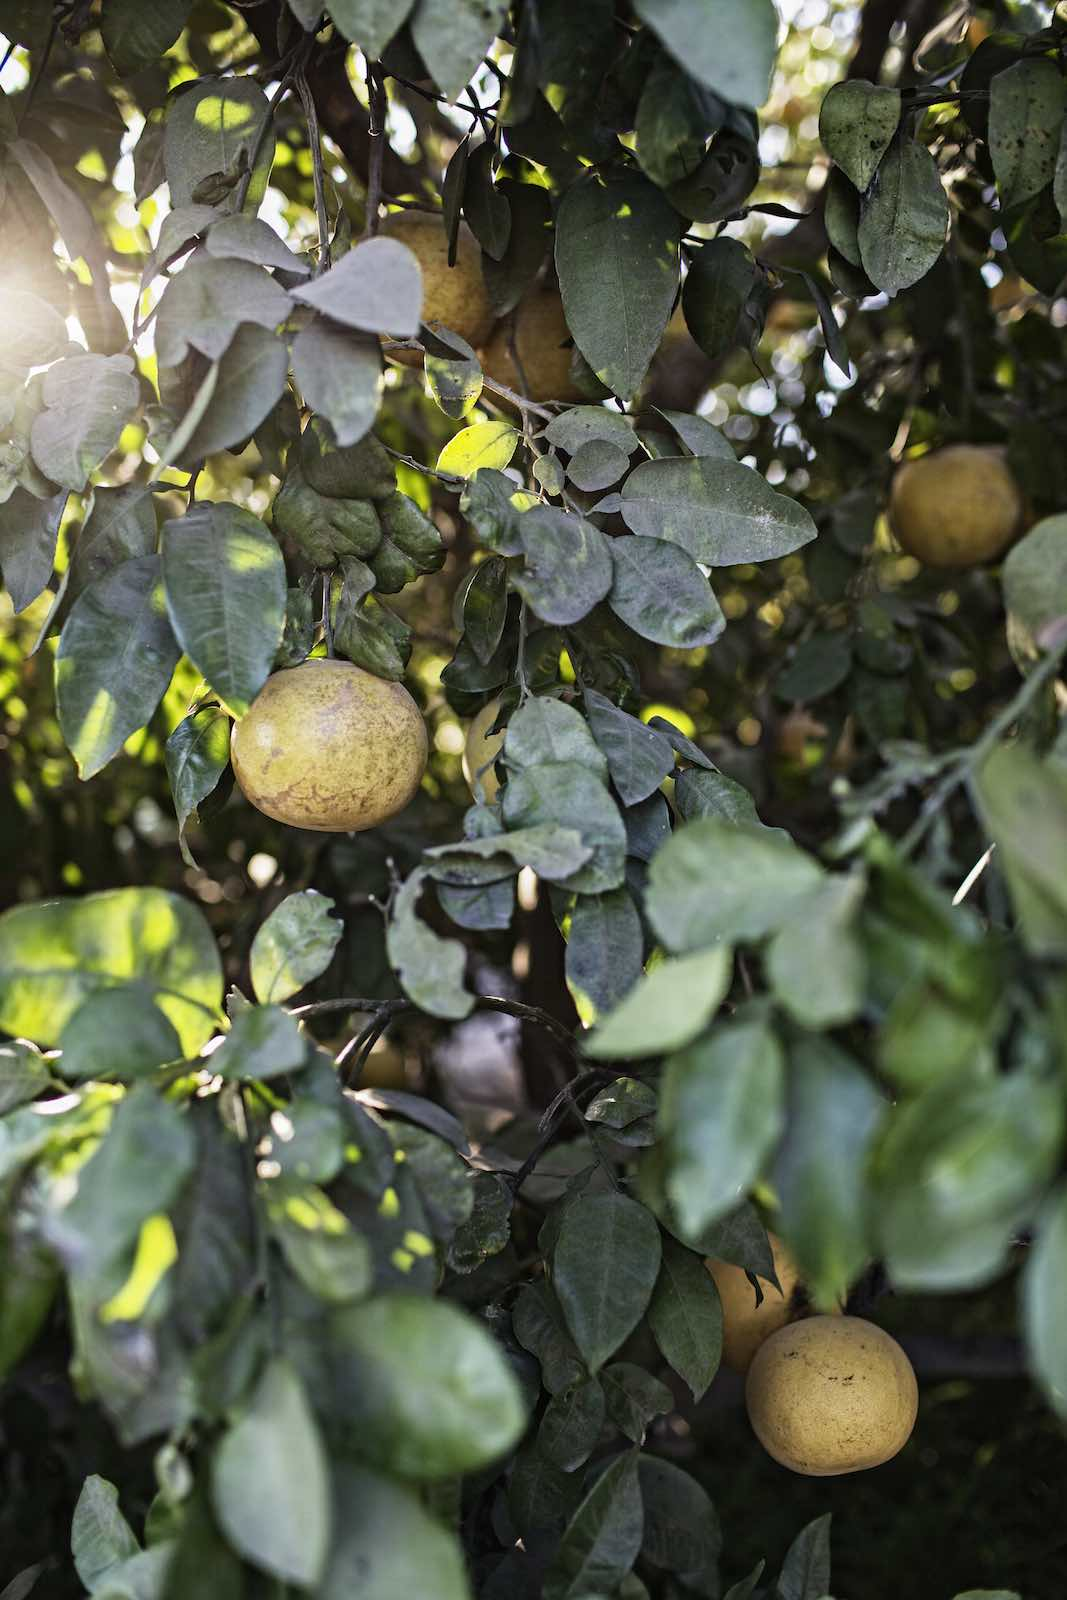 Grapefruits hanging from  a tree.